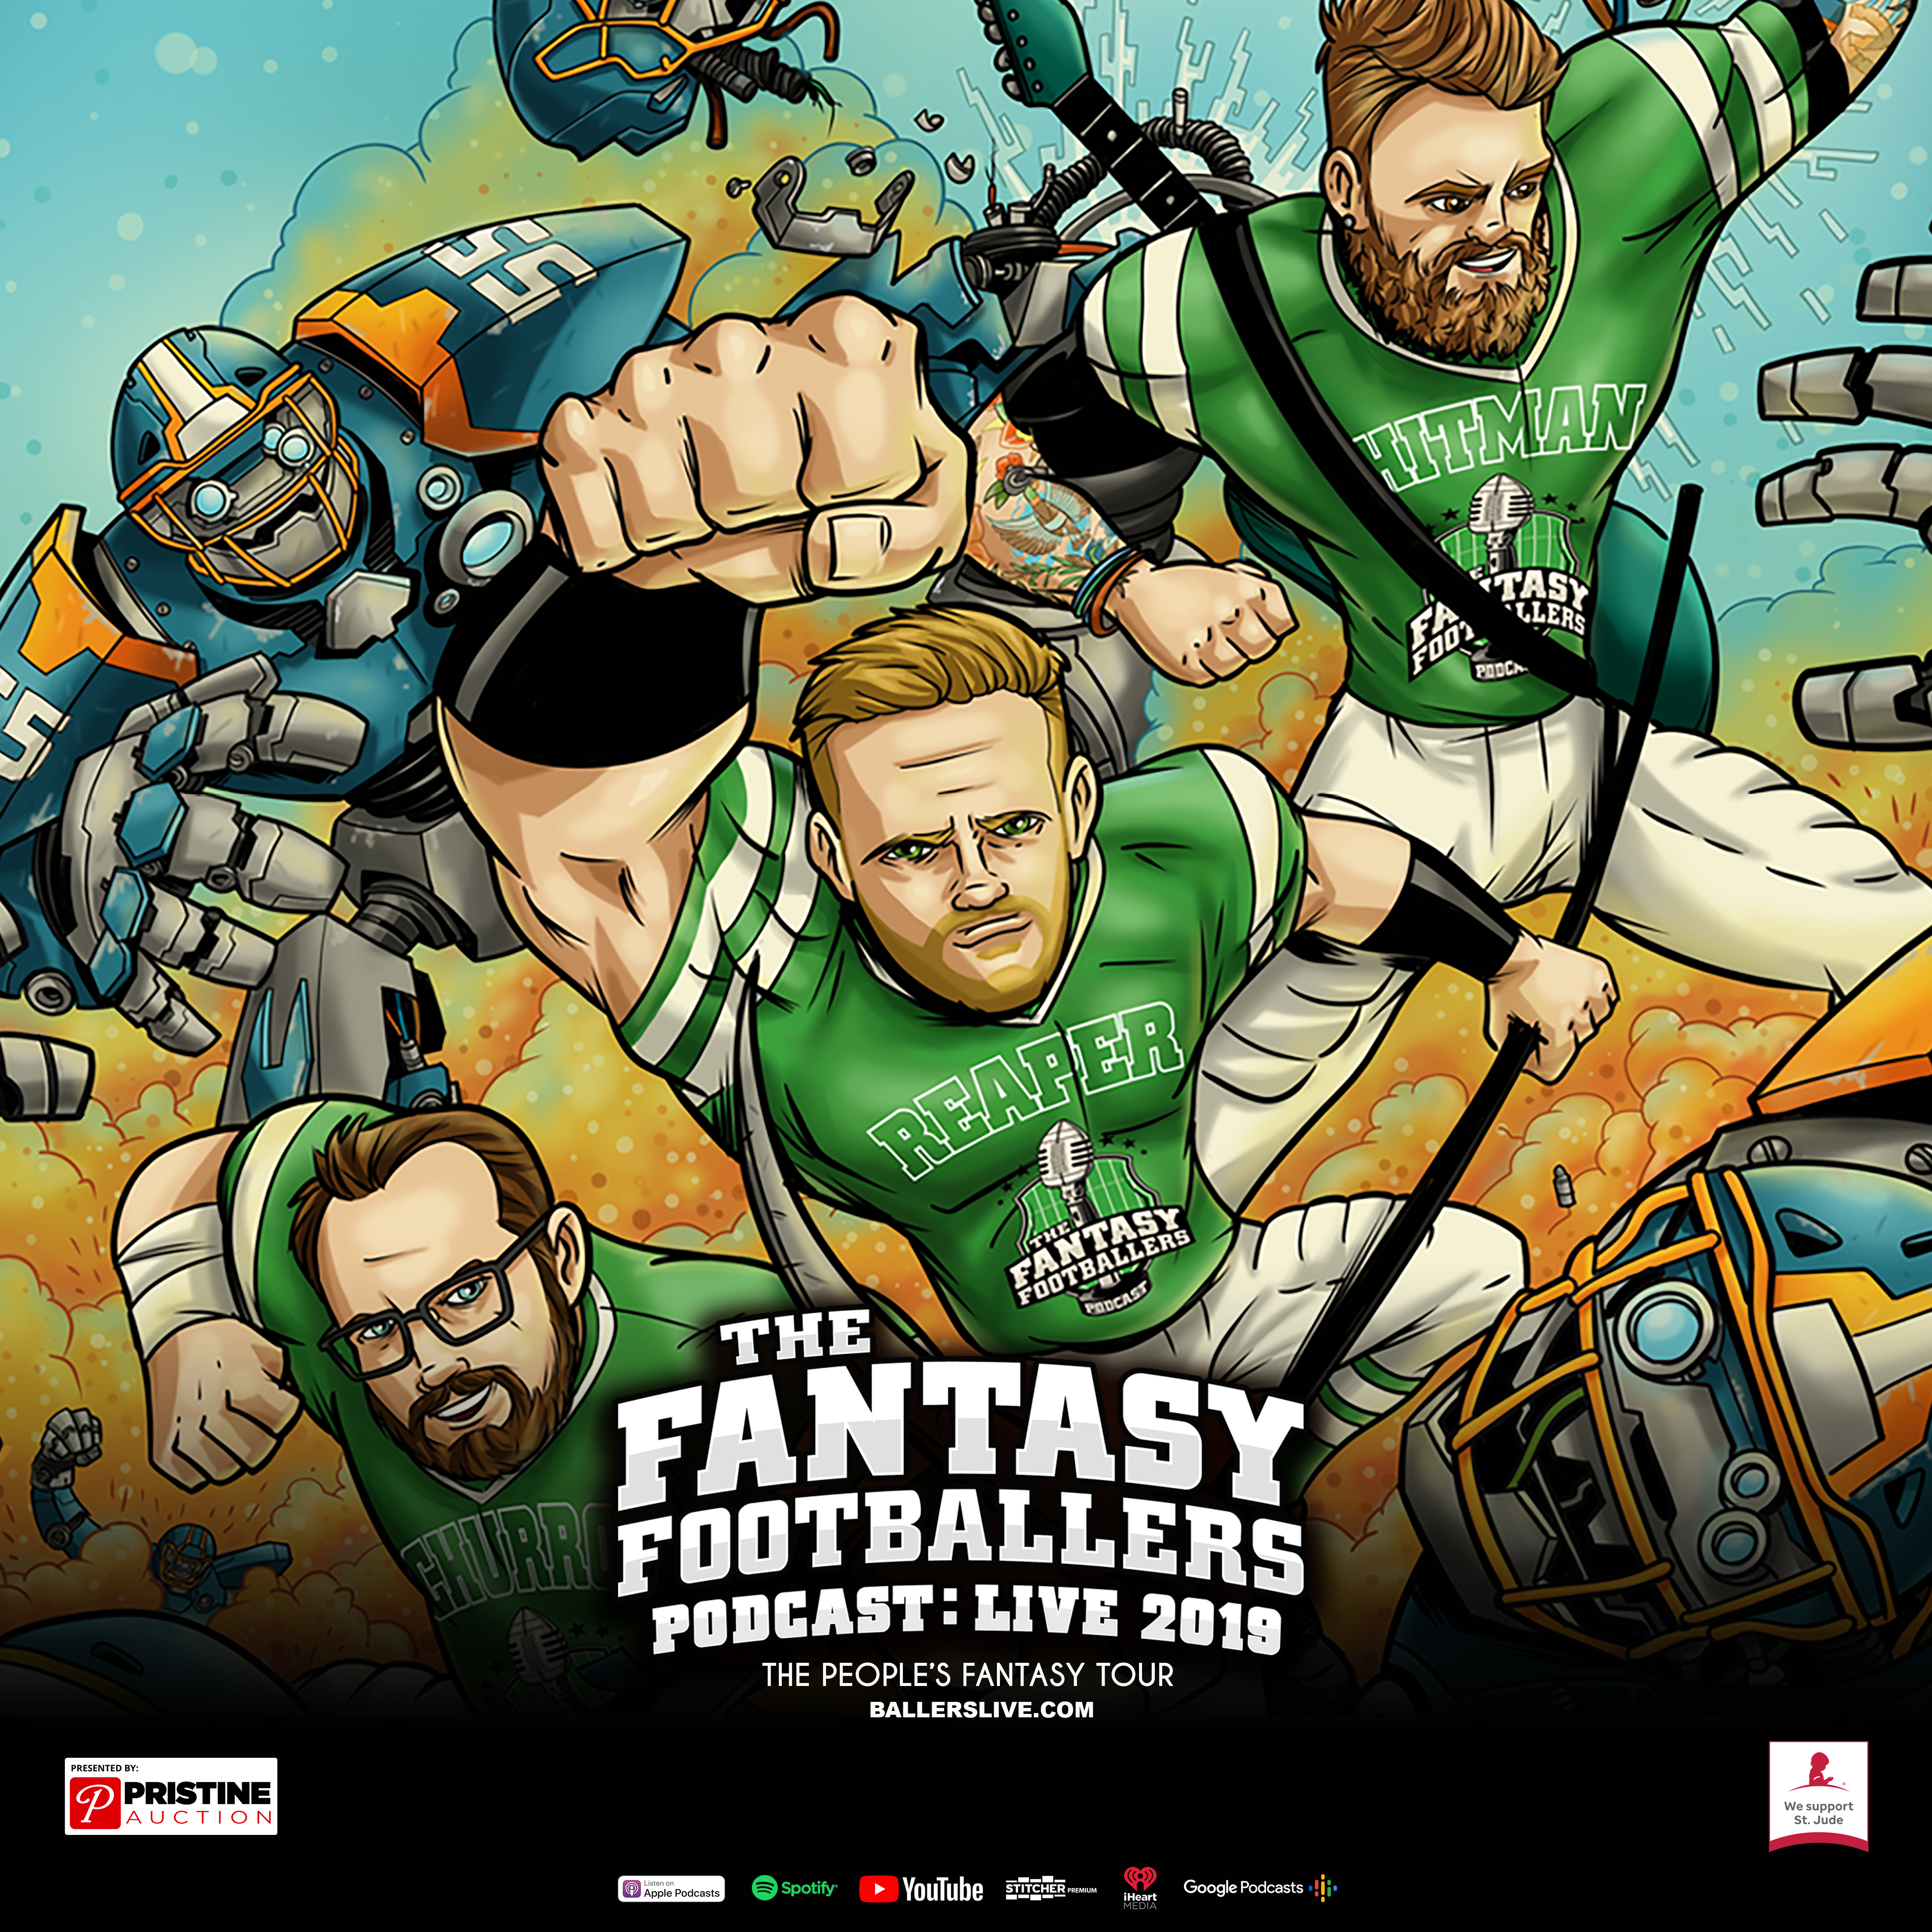 The Fantasy Footballers Podcast: Live